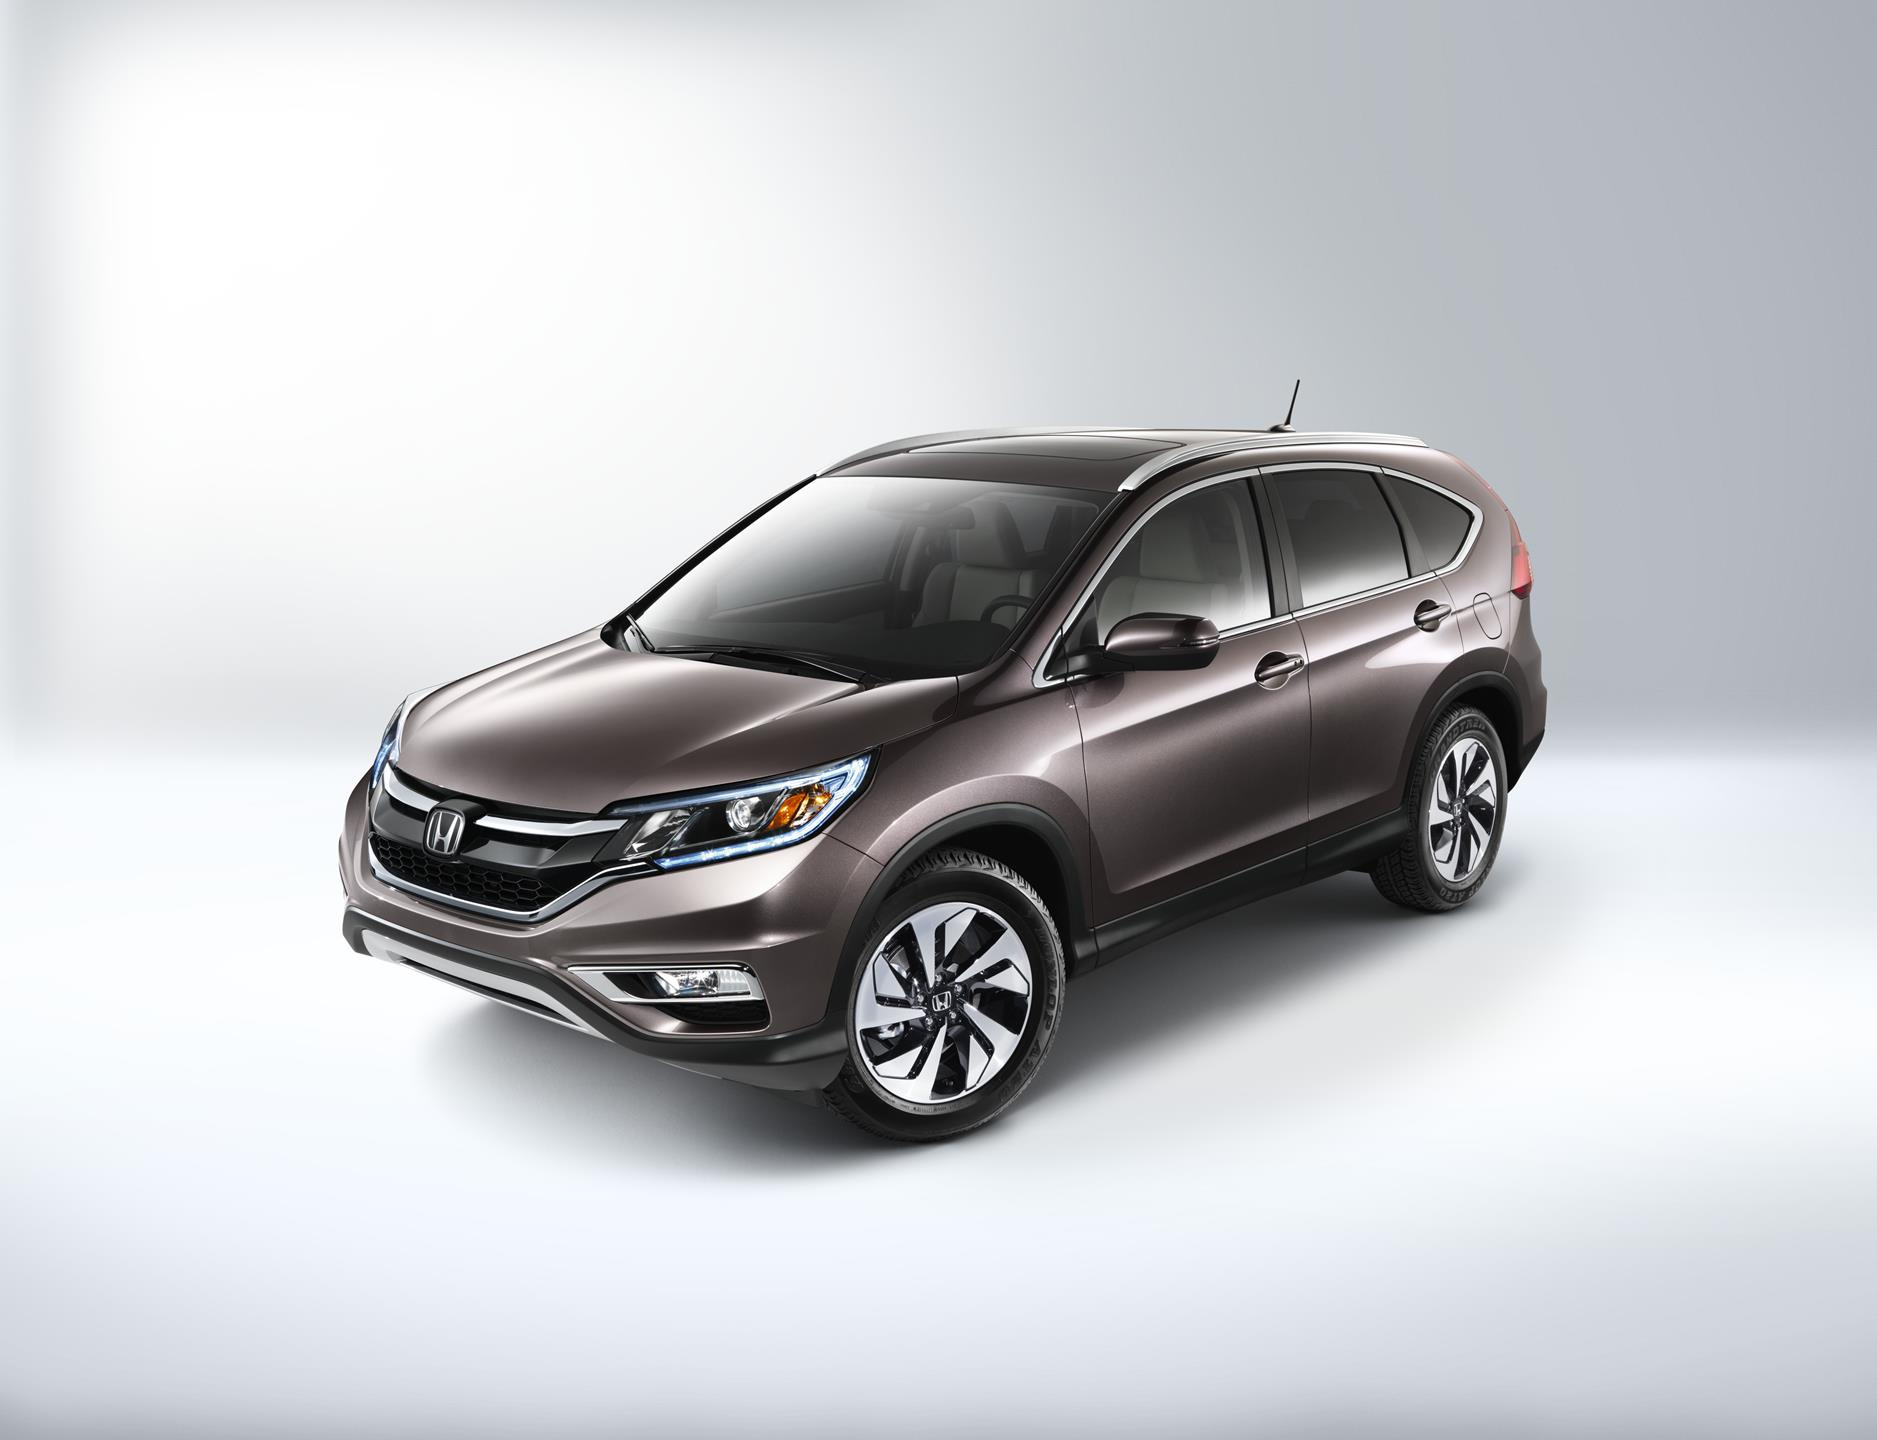 2016 honda cr-v news and information - conceptcarz